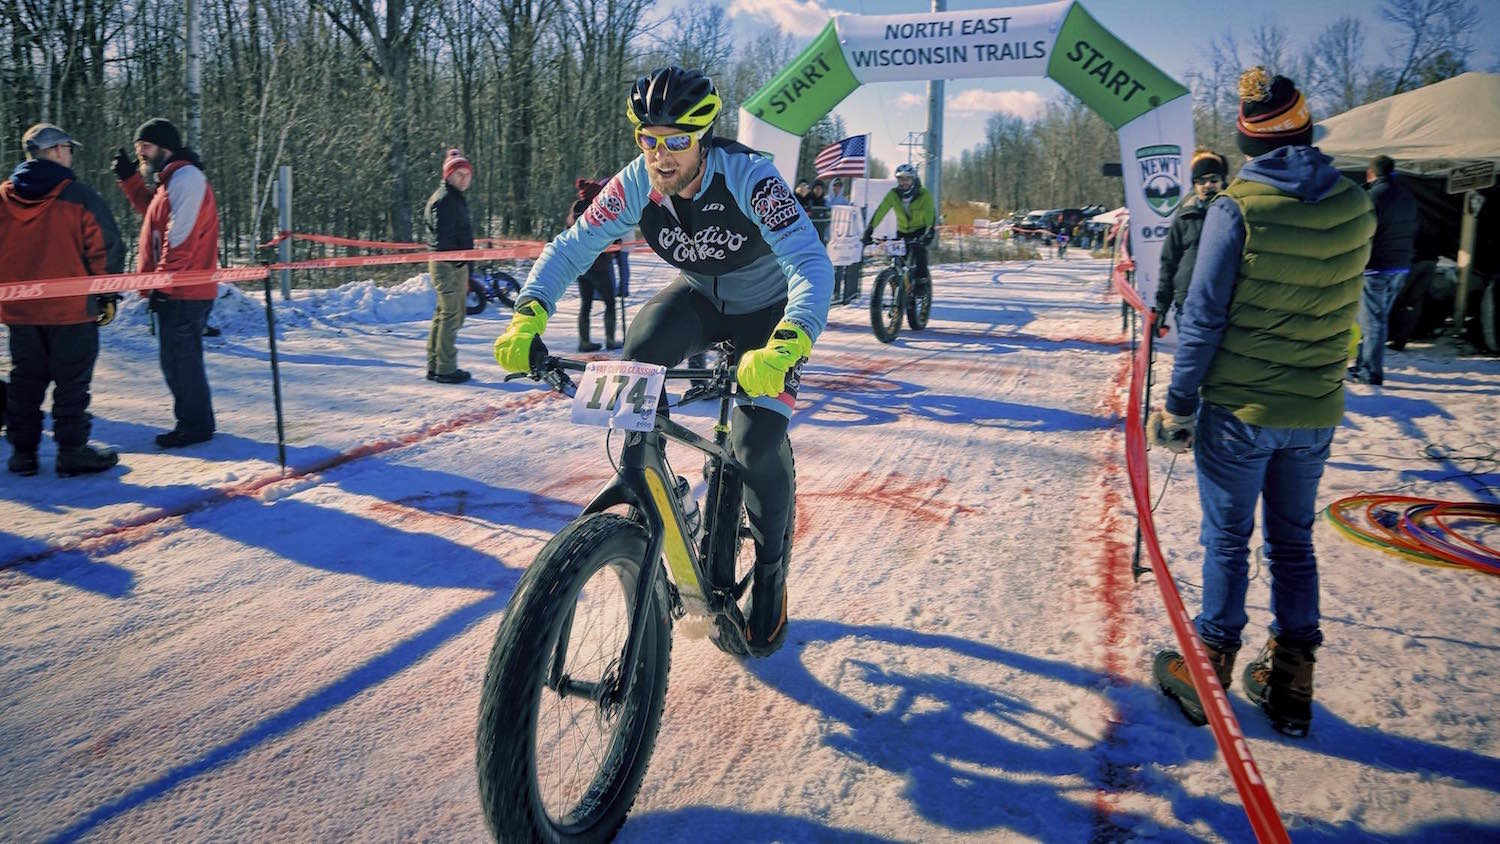 A competitor rides through the start/finish line of the Fat Cupid Classic.